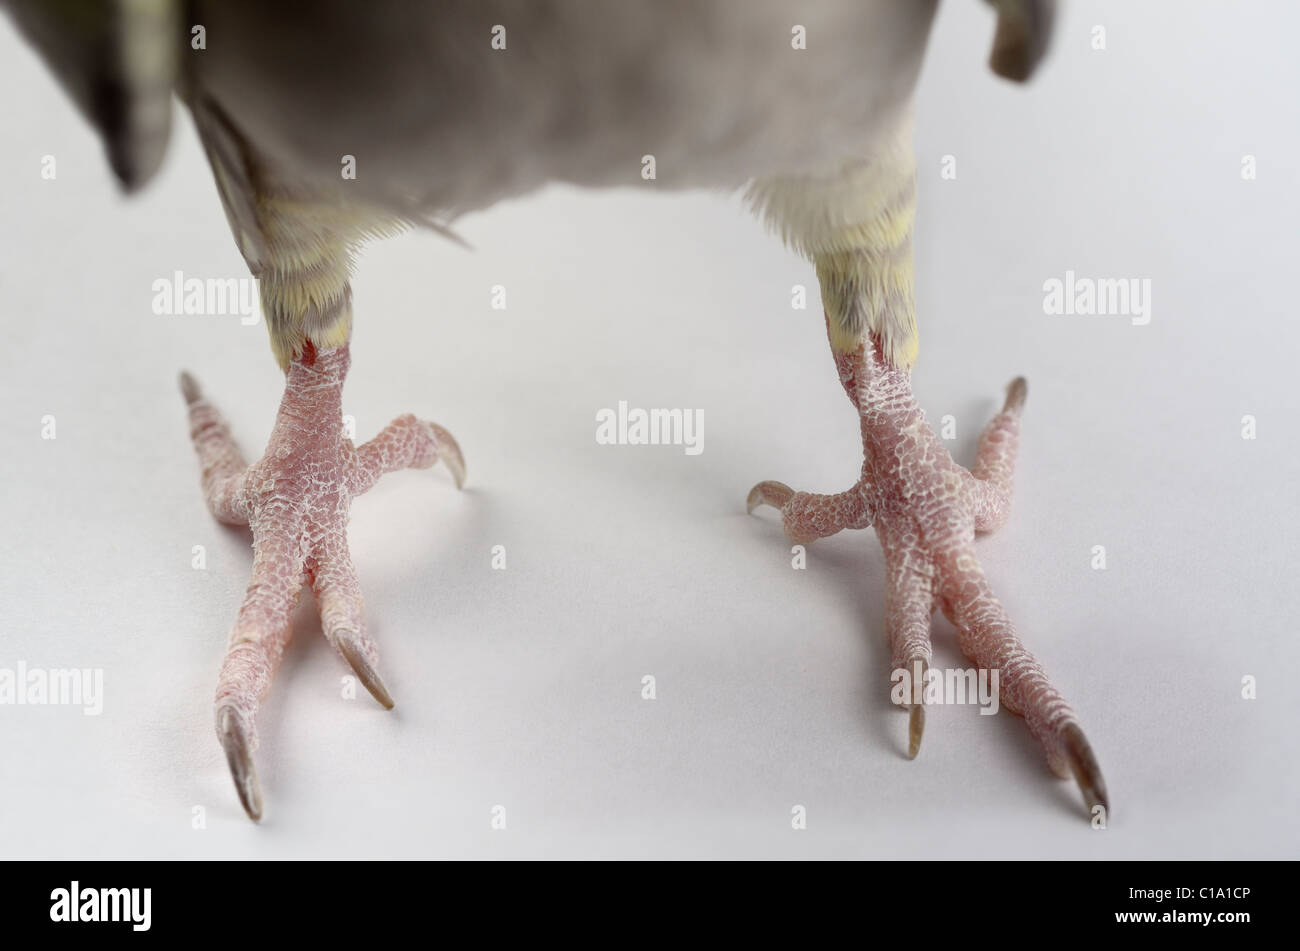 Close up of front view of the dry scaly claws of Pearl Cockatiel bird feet - Stock Image